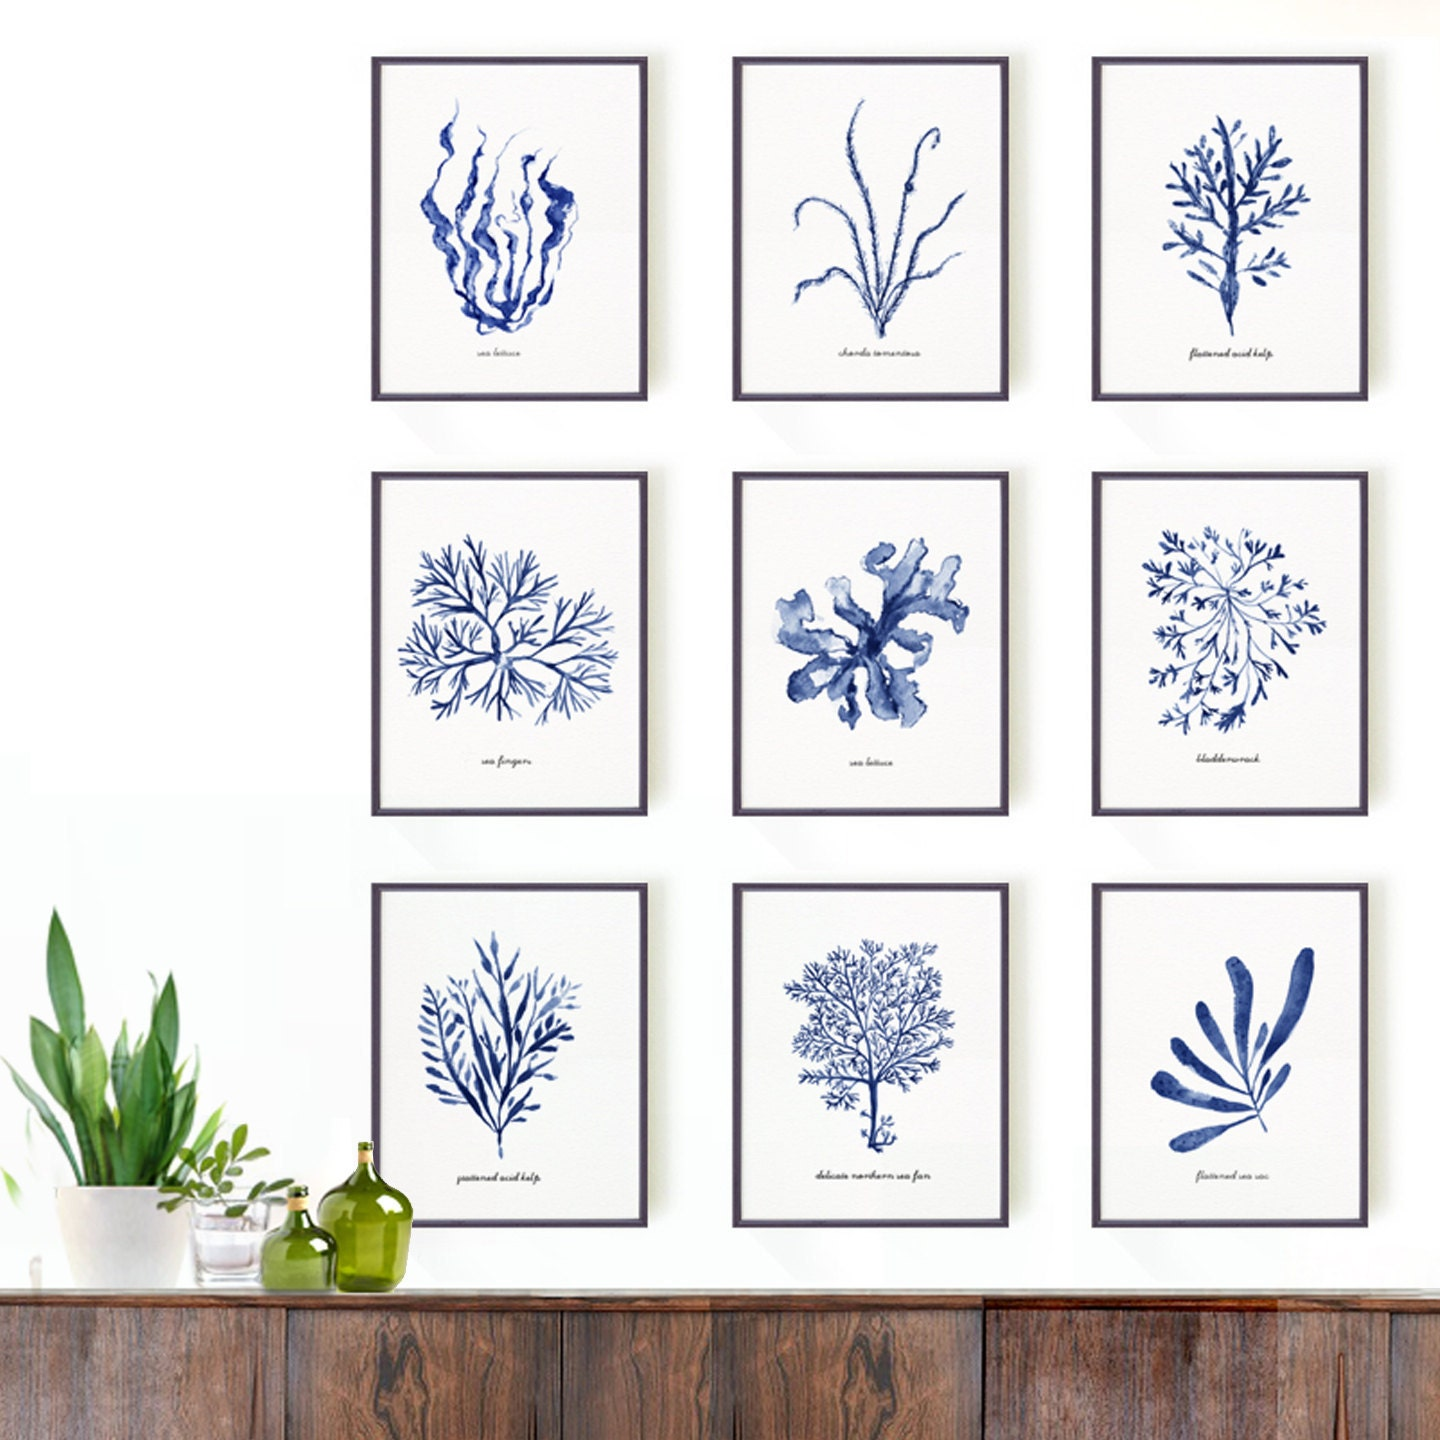 Bathroom d cor seaweed watercolor painting set of 9 for Paintings for bathroom decoration